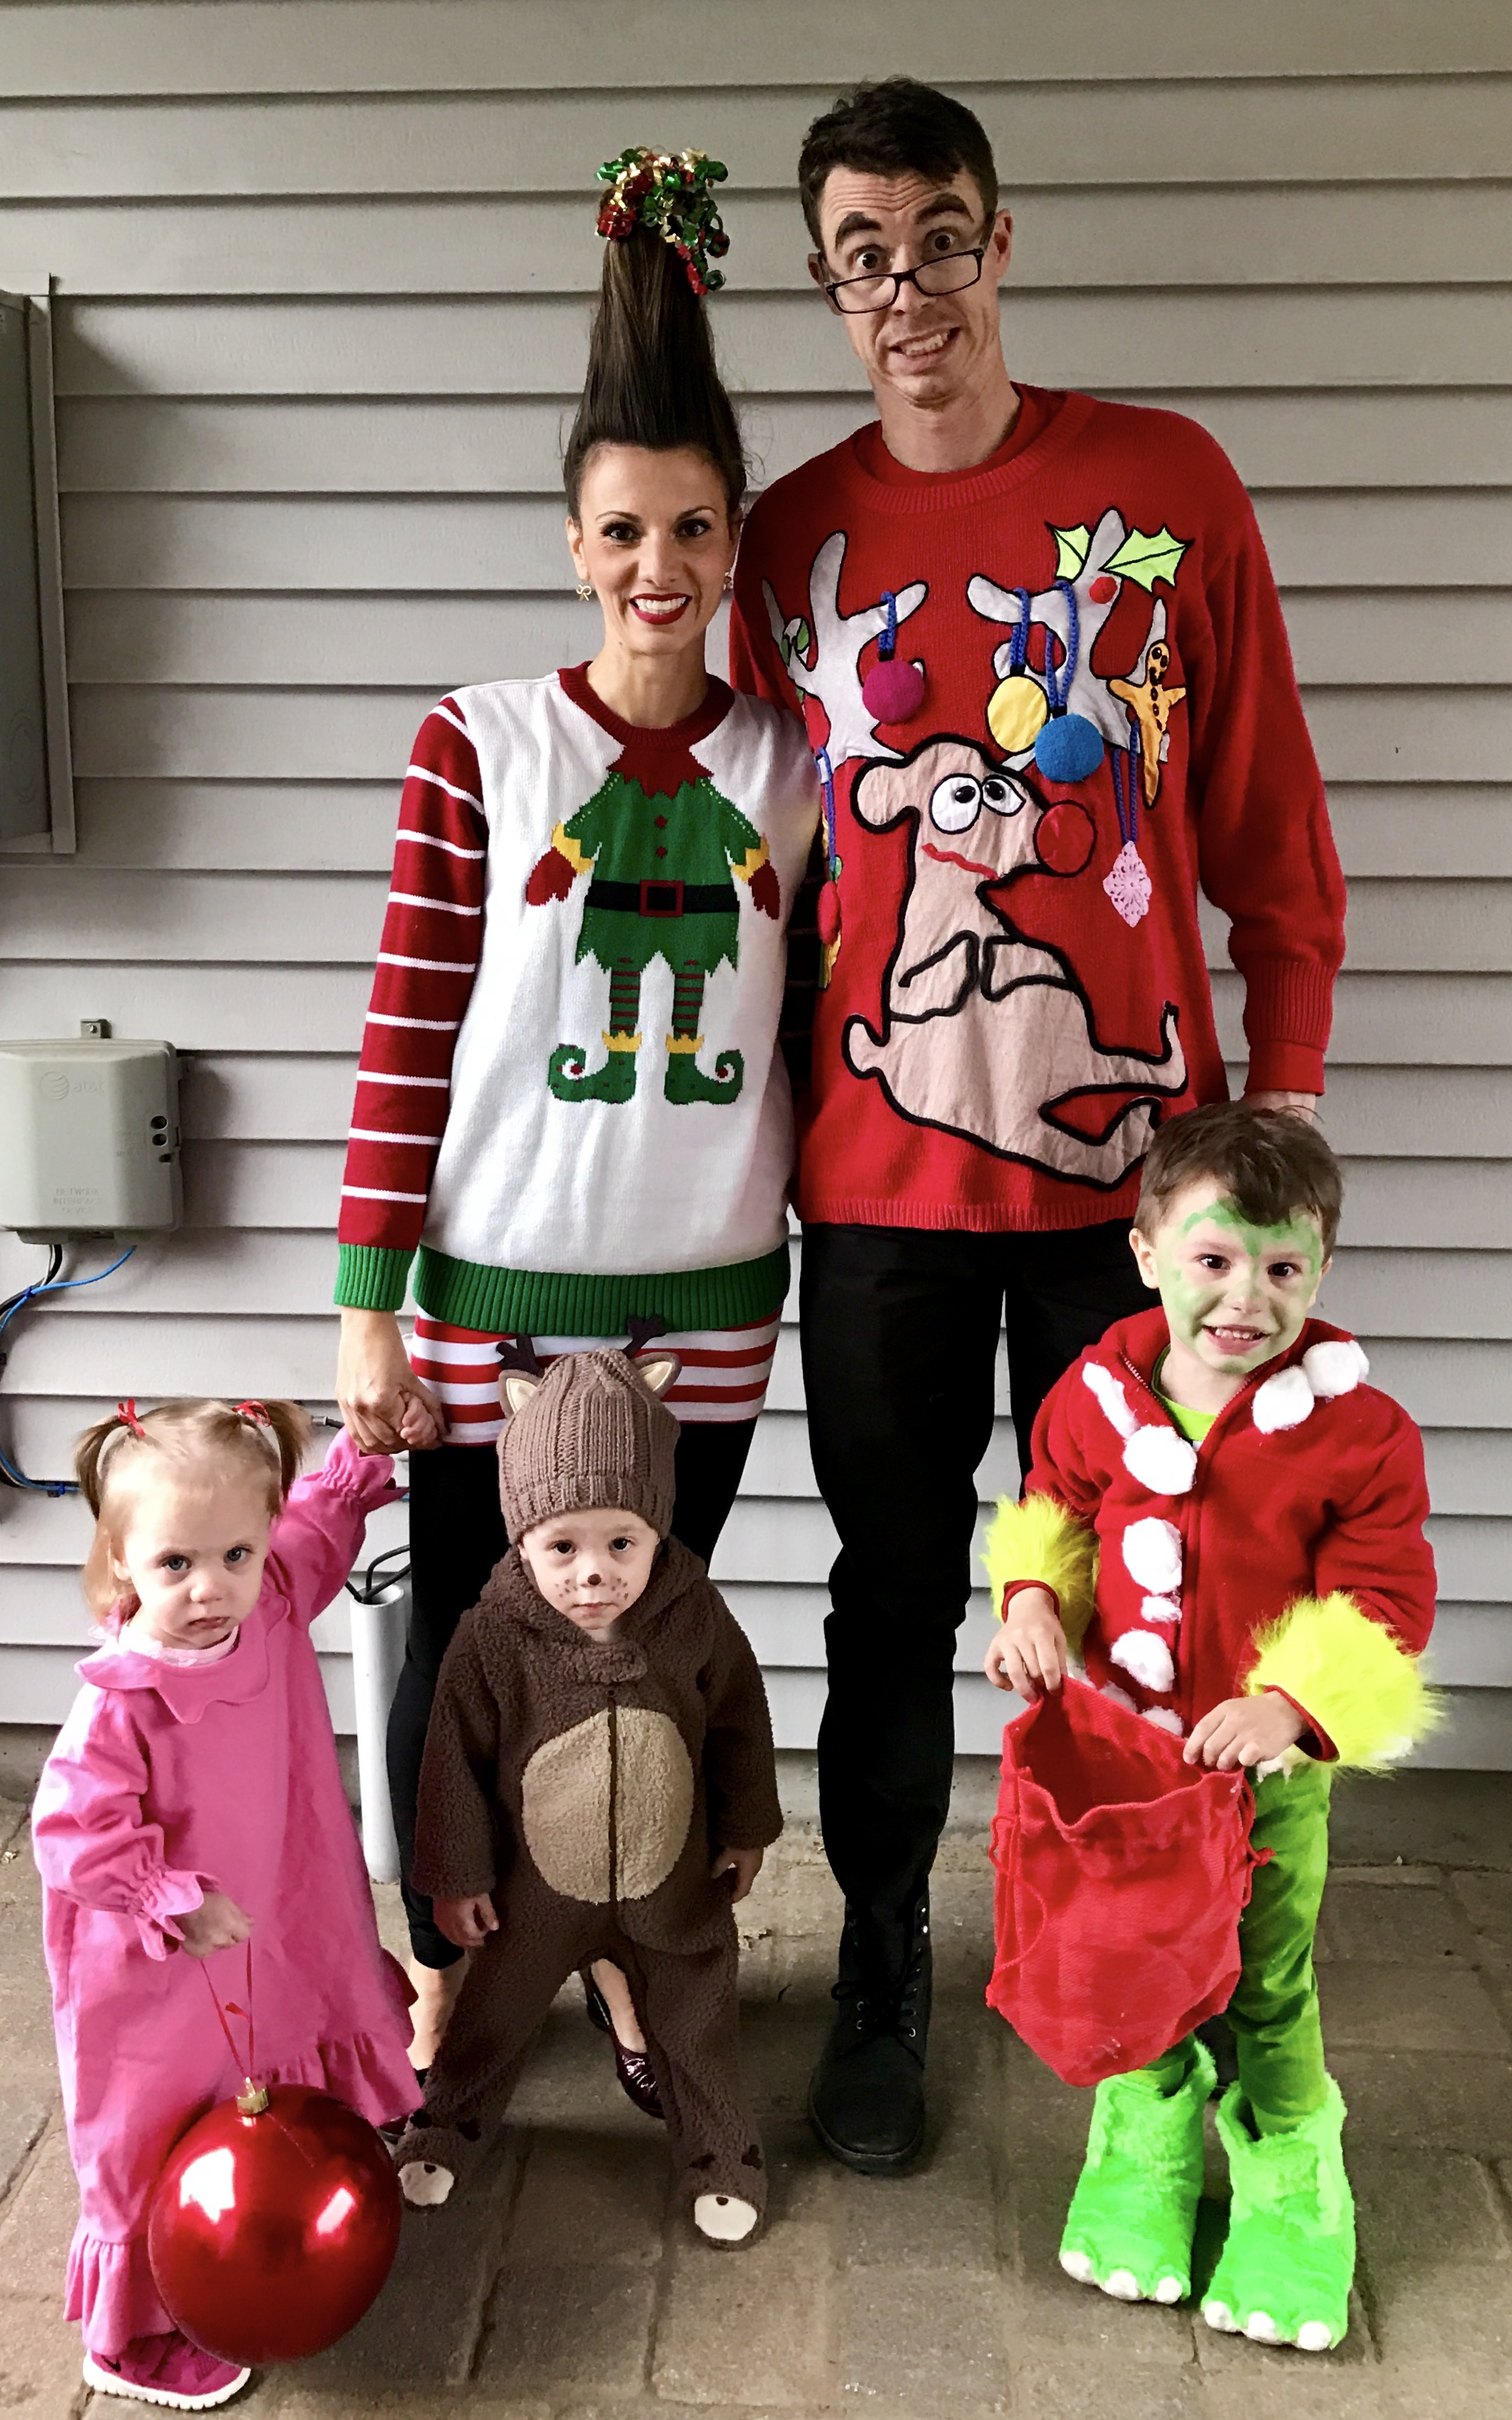 Grinch Themed Family Halloween Costumes 2016 \u2014 The Green Robe